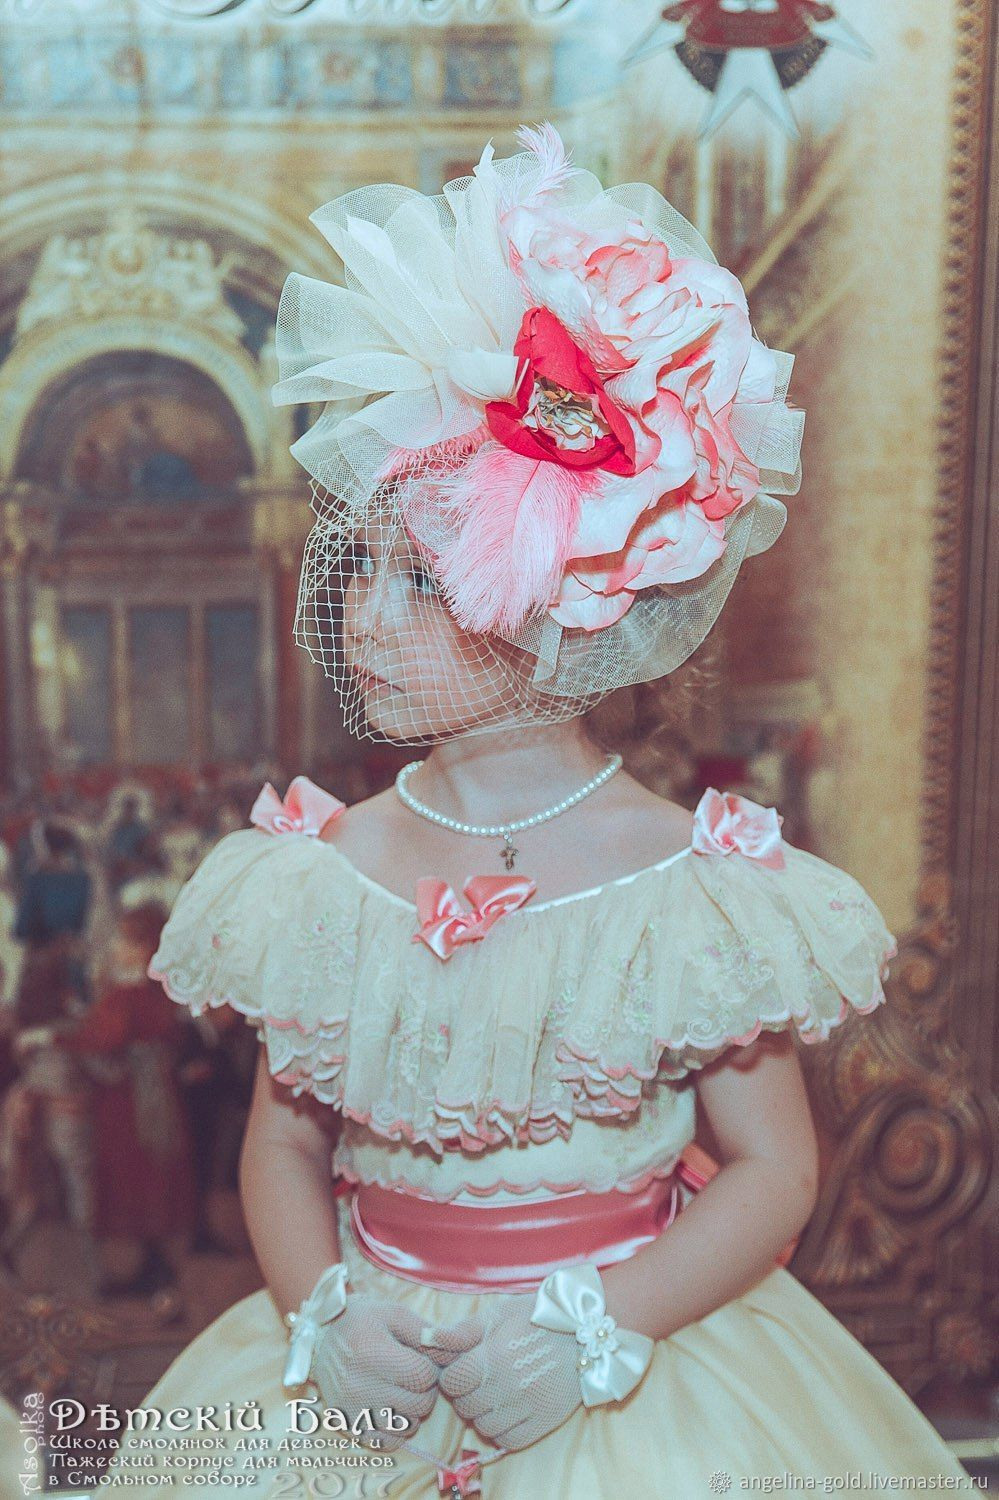 Clothing for girls, handmade. Buy a young Princess ball gown.